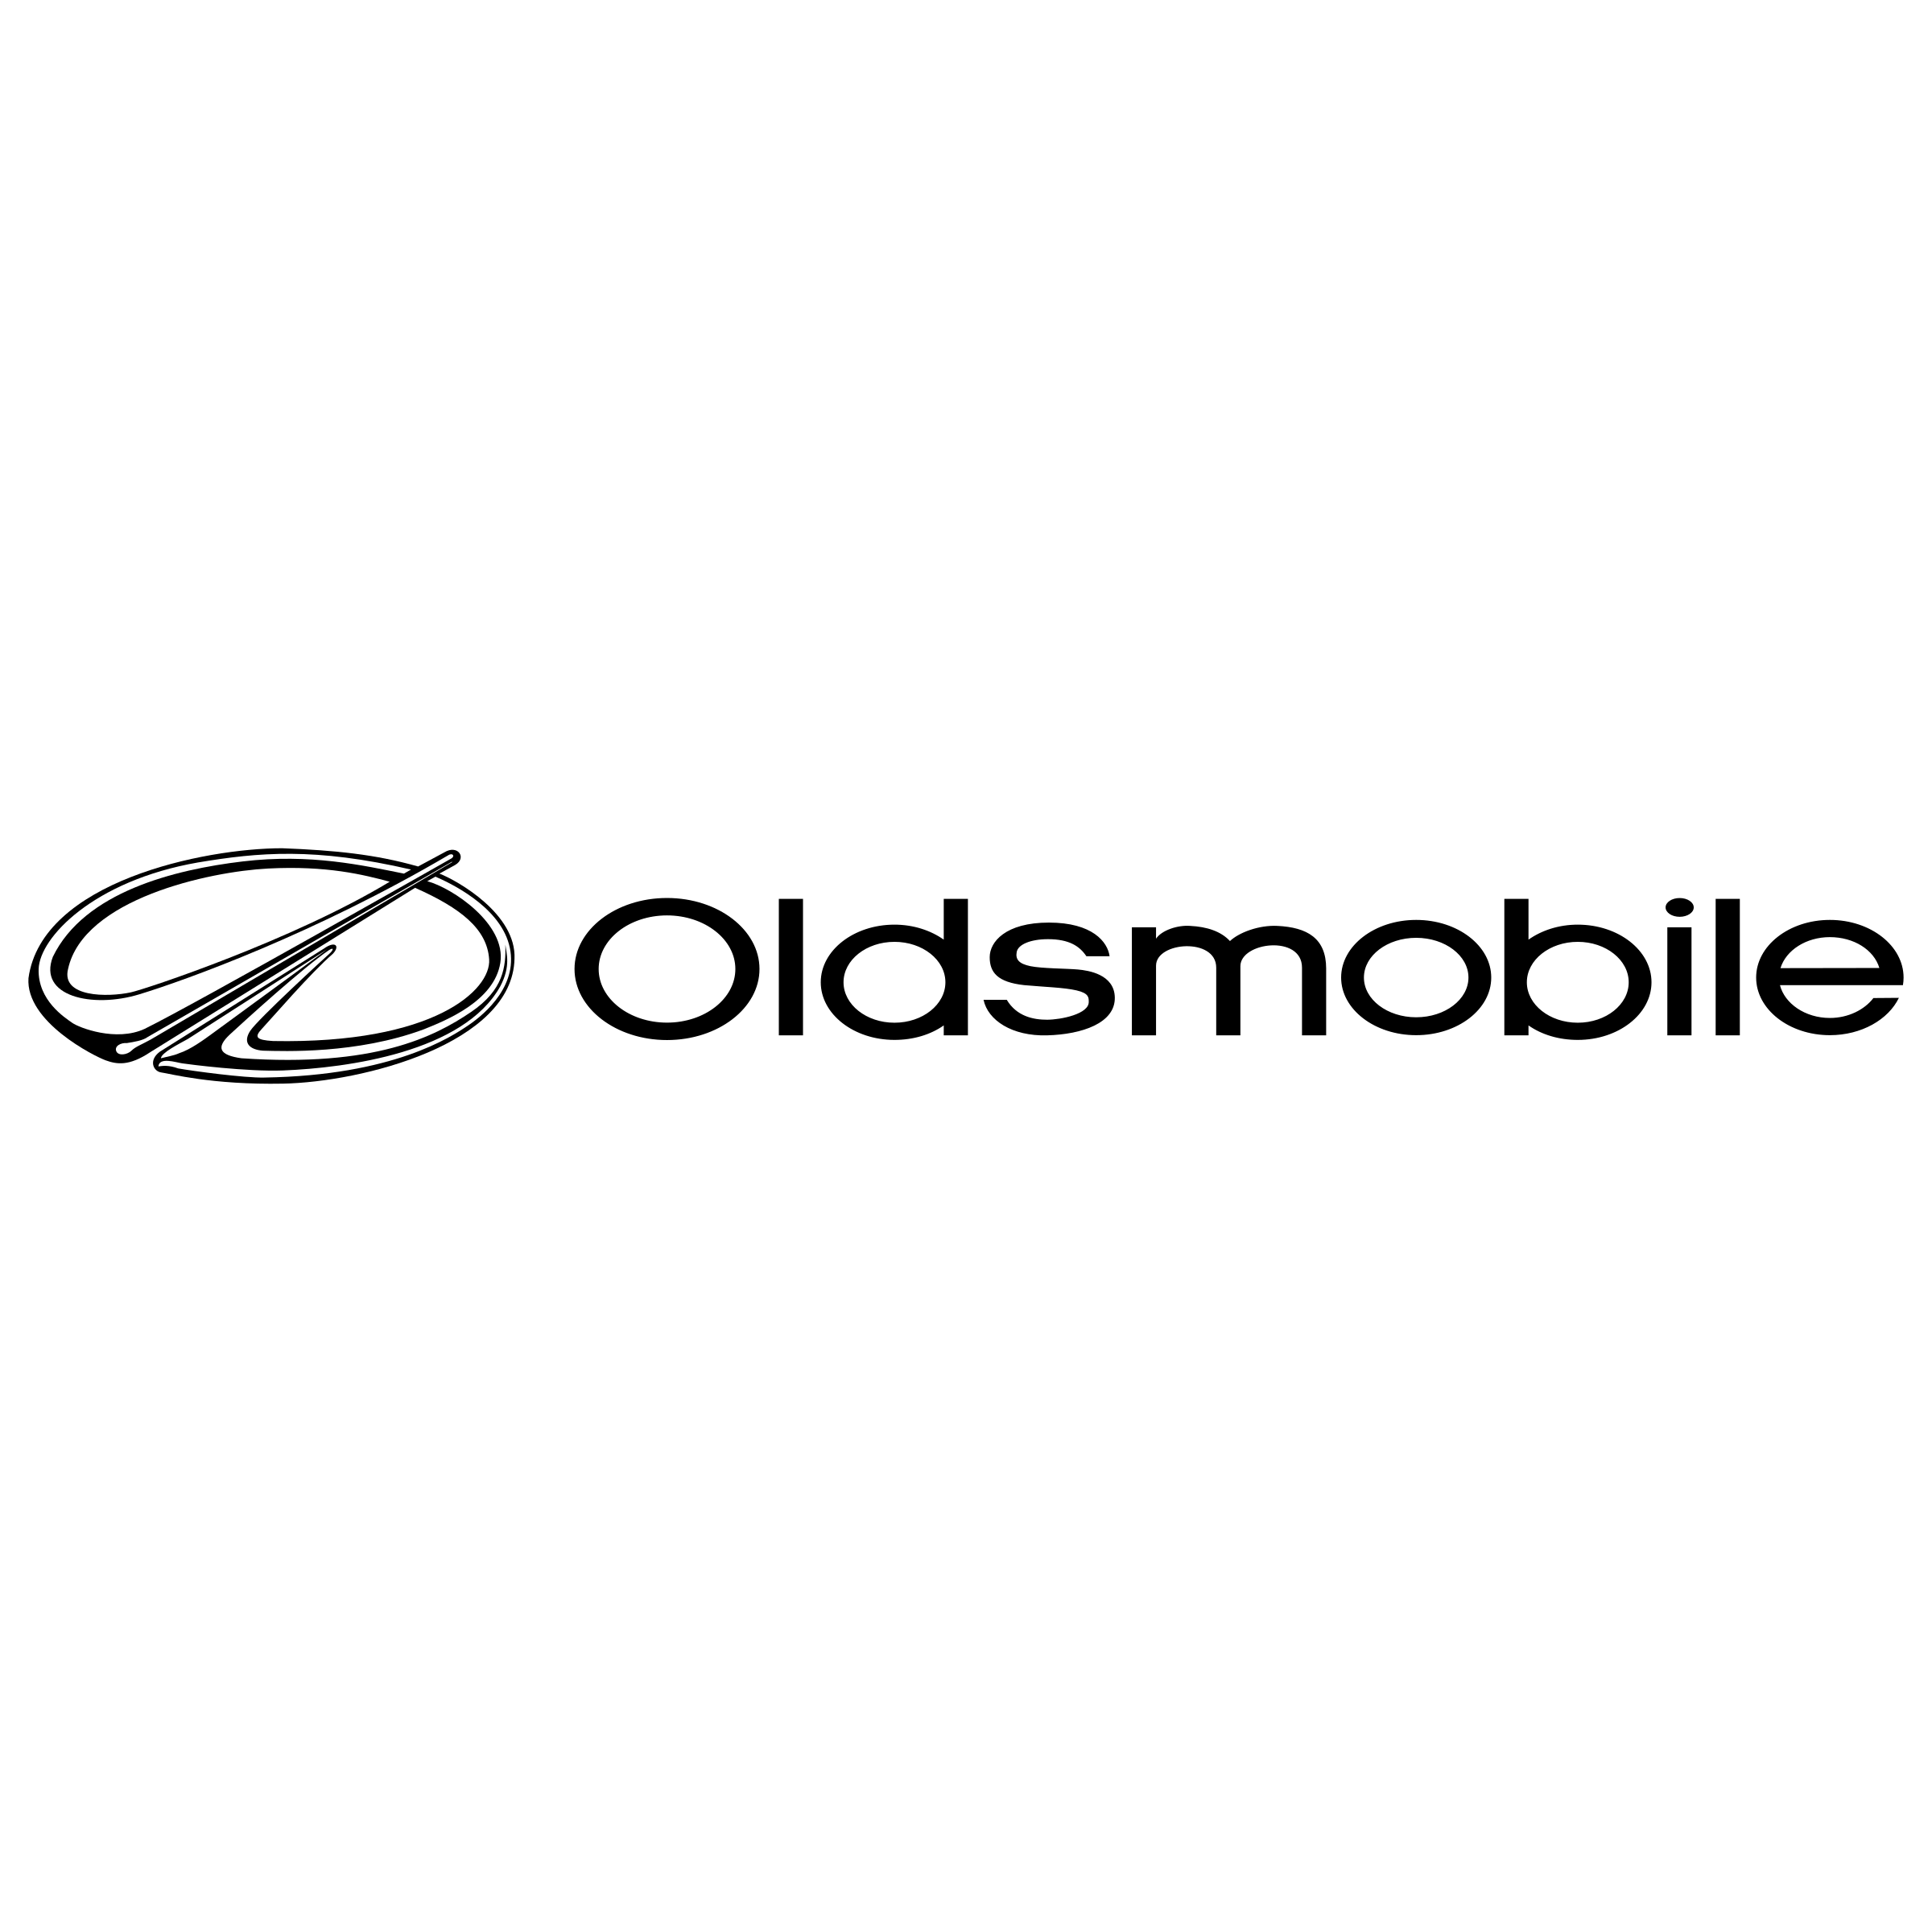 Oldsmobile Logo - Oldsmobile Logo PNG Transparent & SVG Vector - Freebie Supply